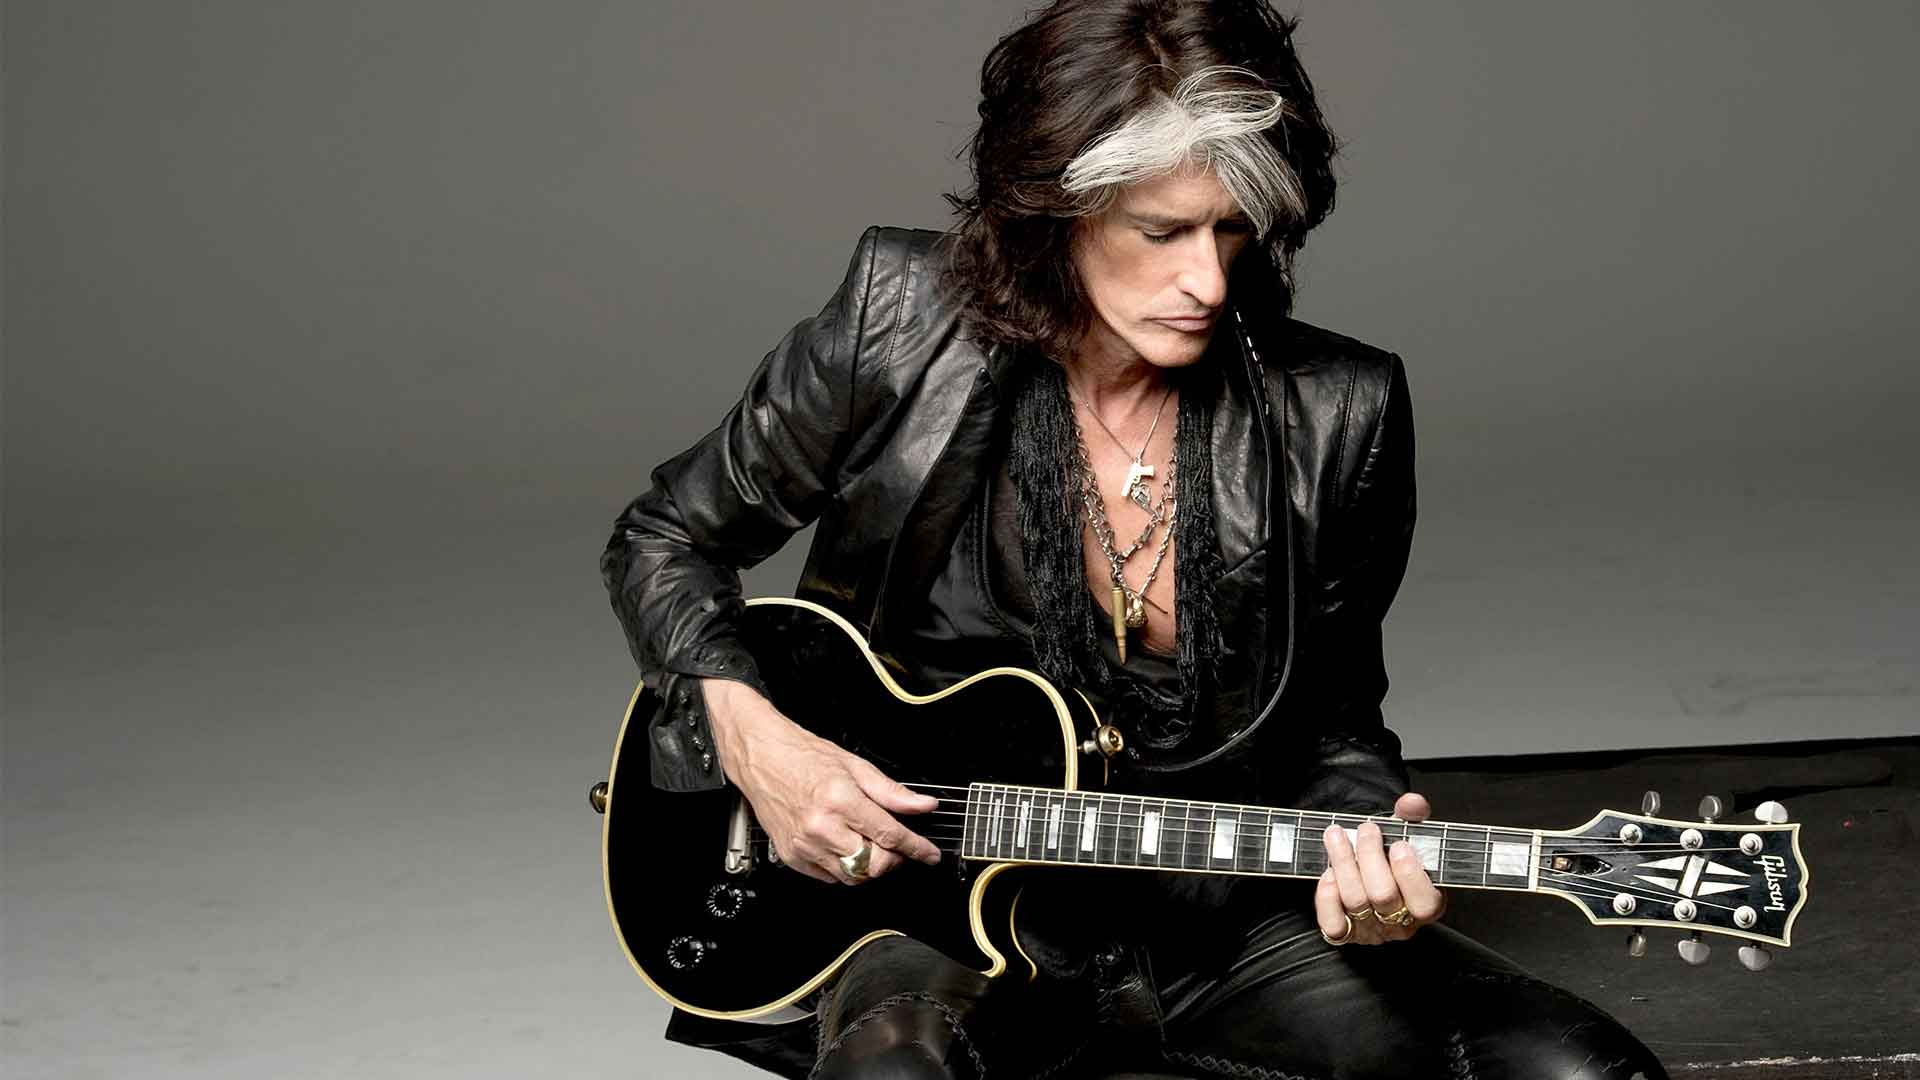 The 67-year old son of father (?) and mother(?), 190 cm tall Joe Perry in 2017 photo